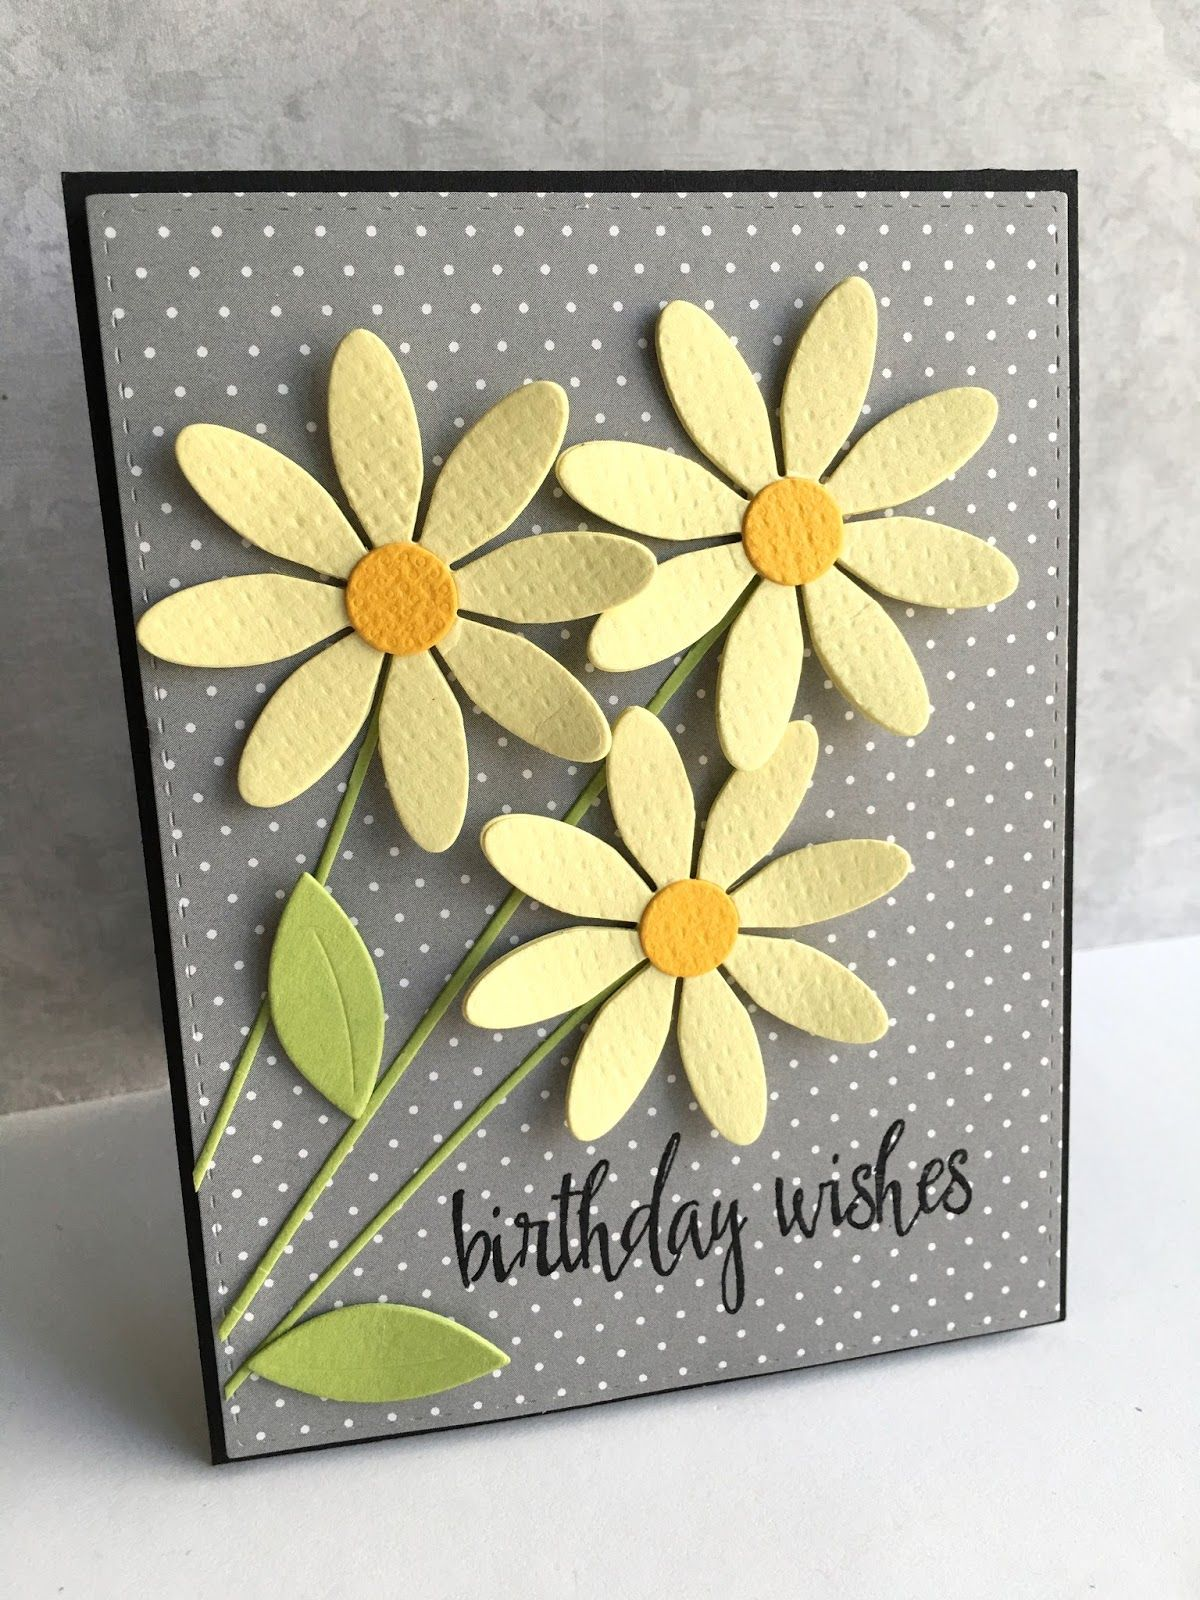 Ium in haven canut resist a daisy die making cards pinterest